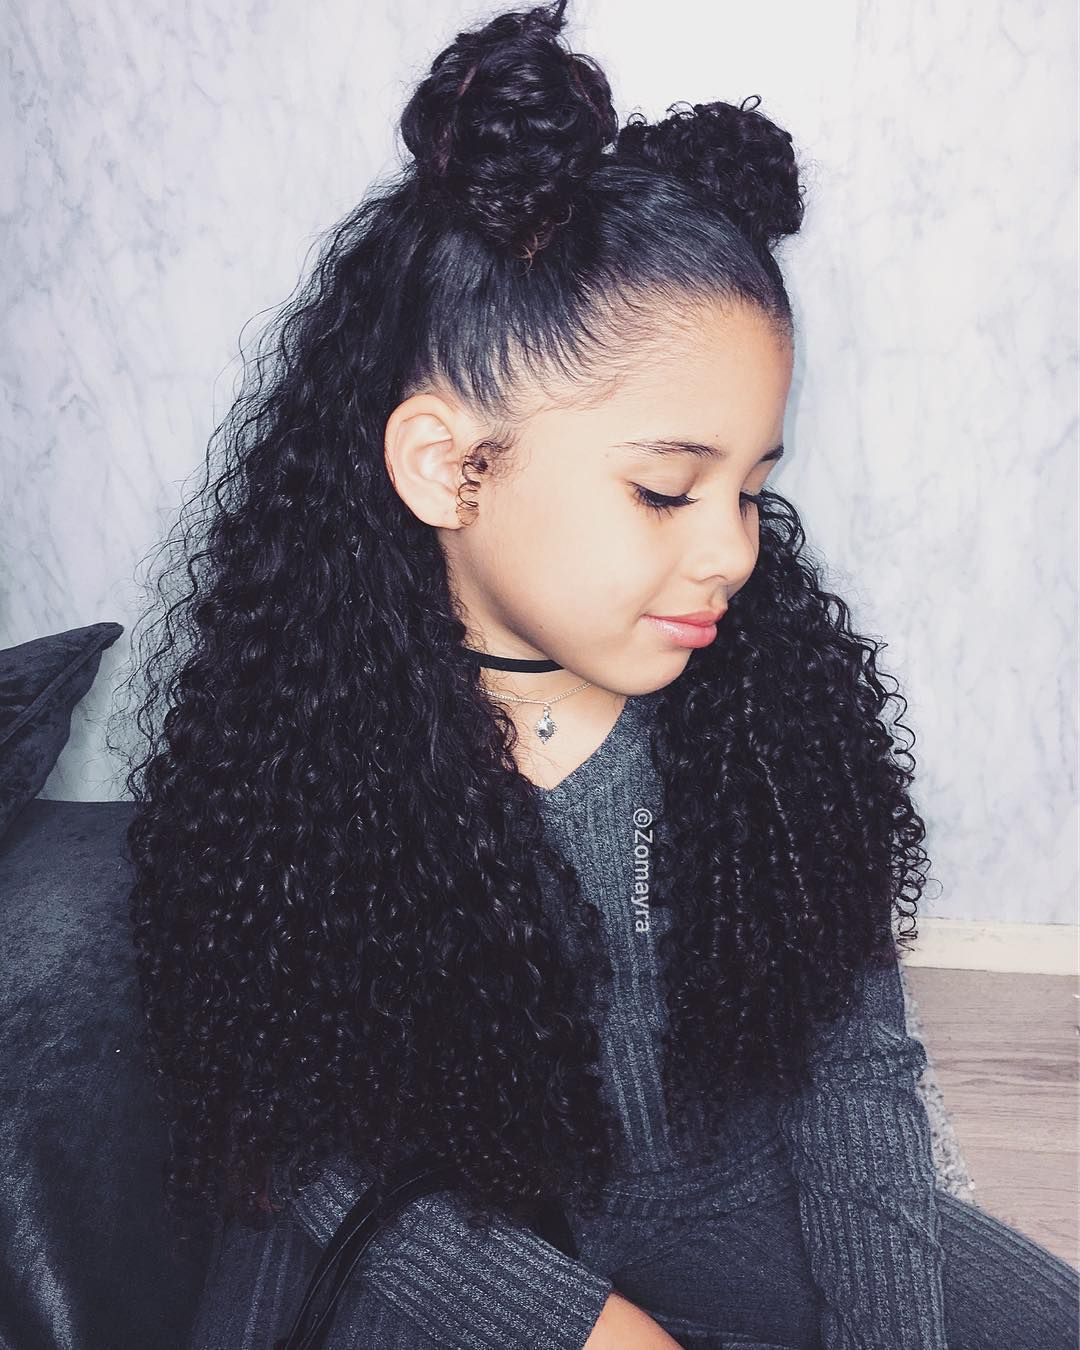 Cute hairstyles for kids hairstyleforblackwomen.net 233